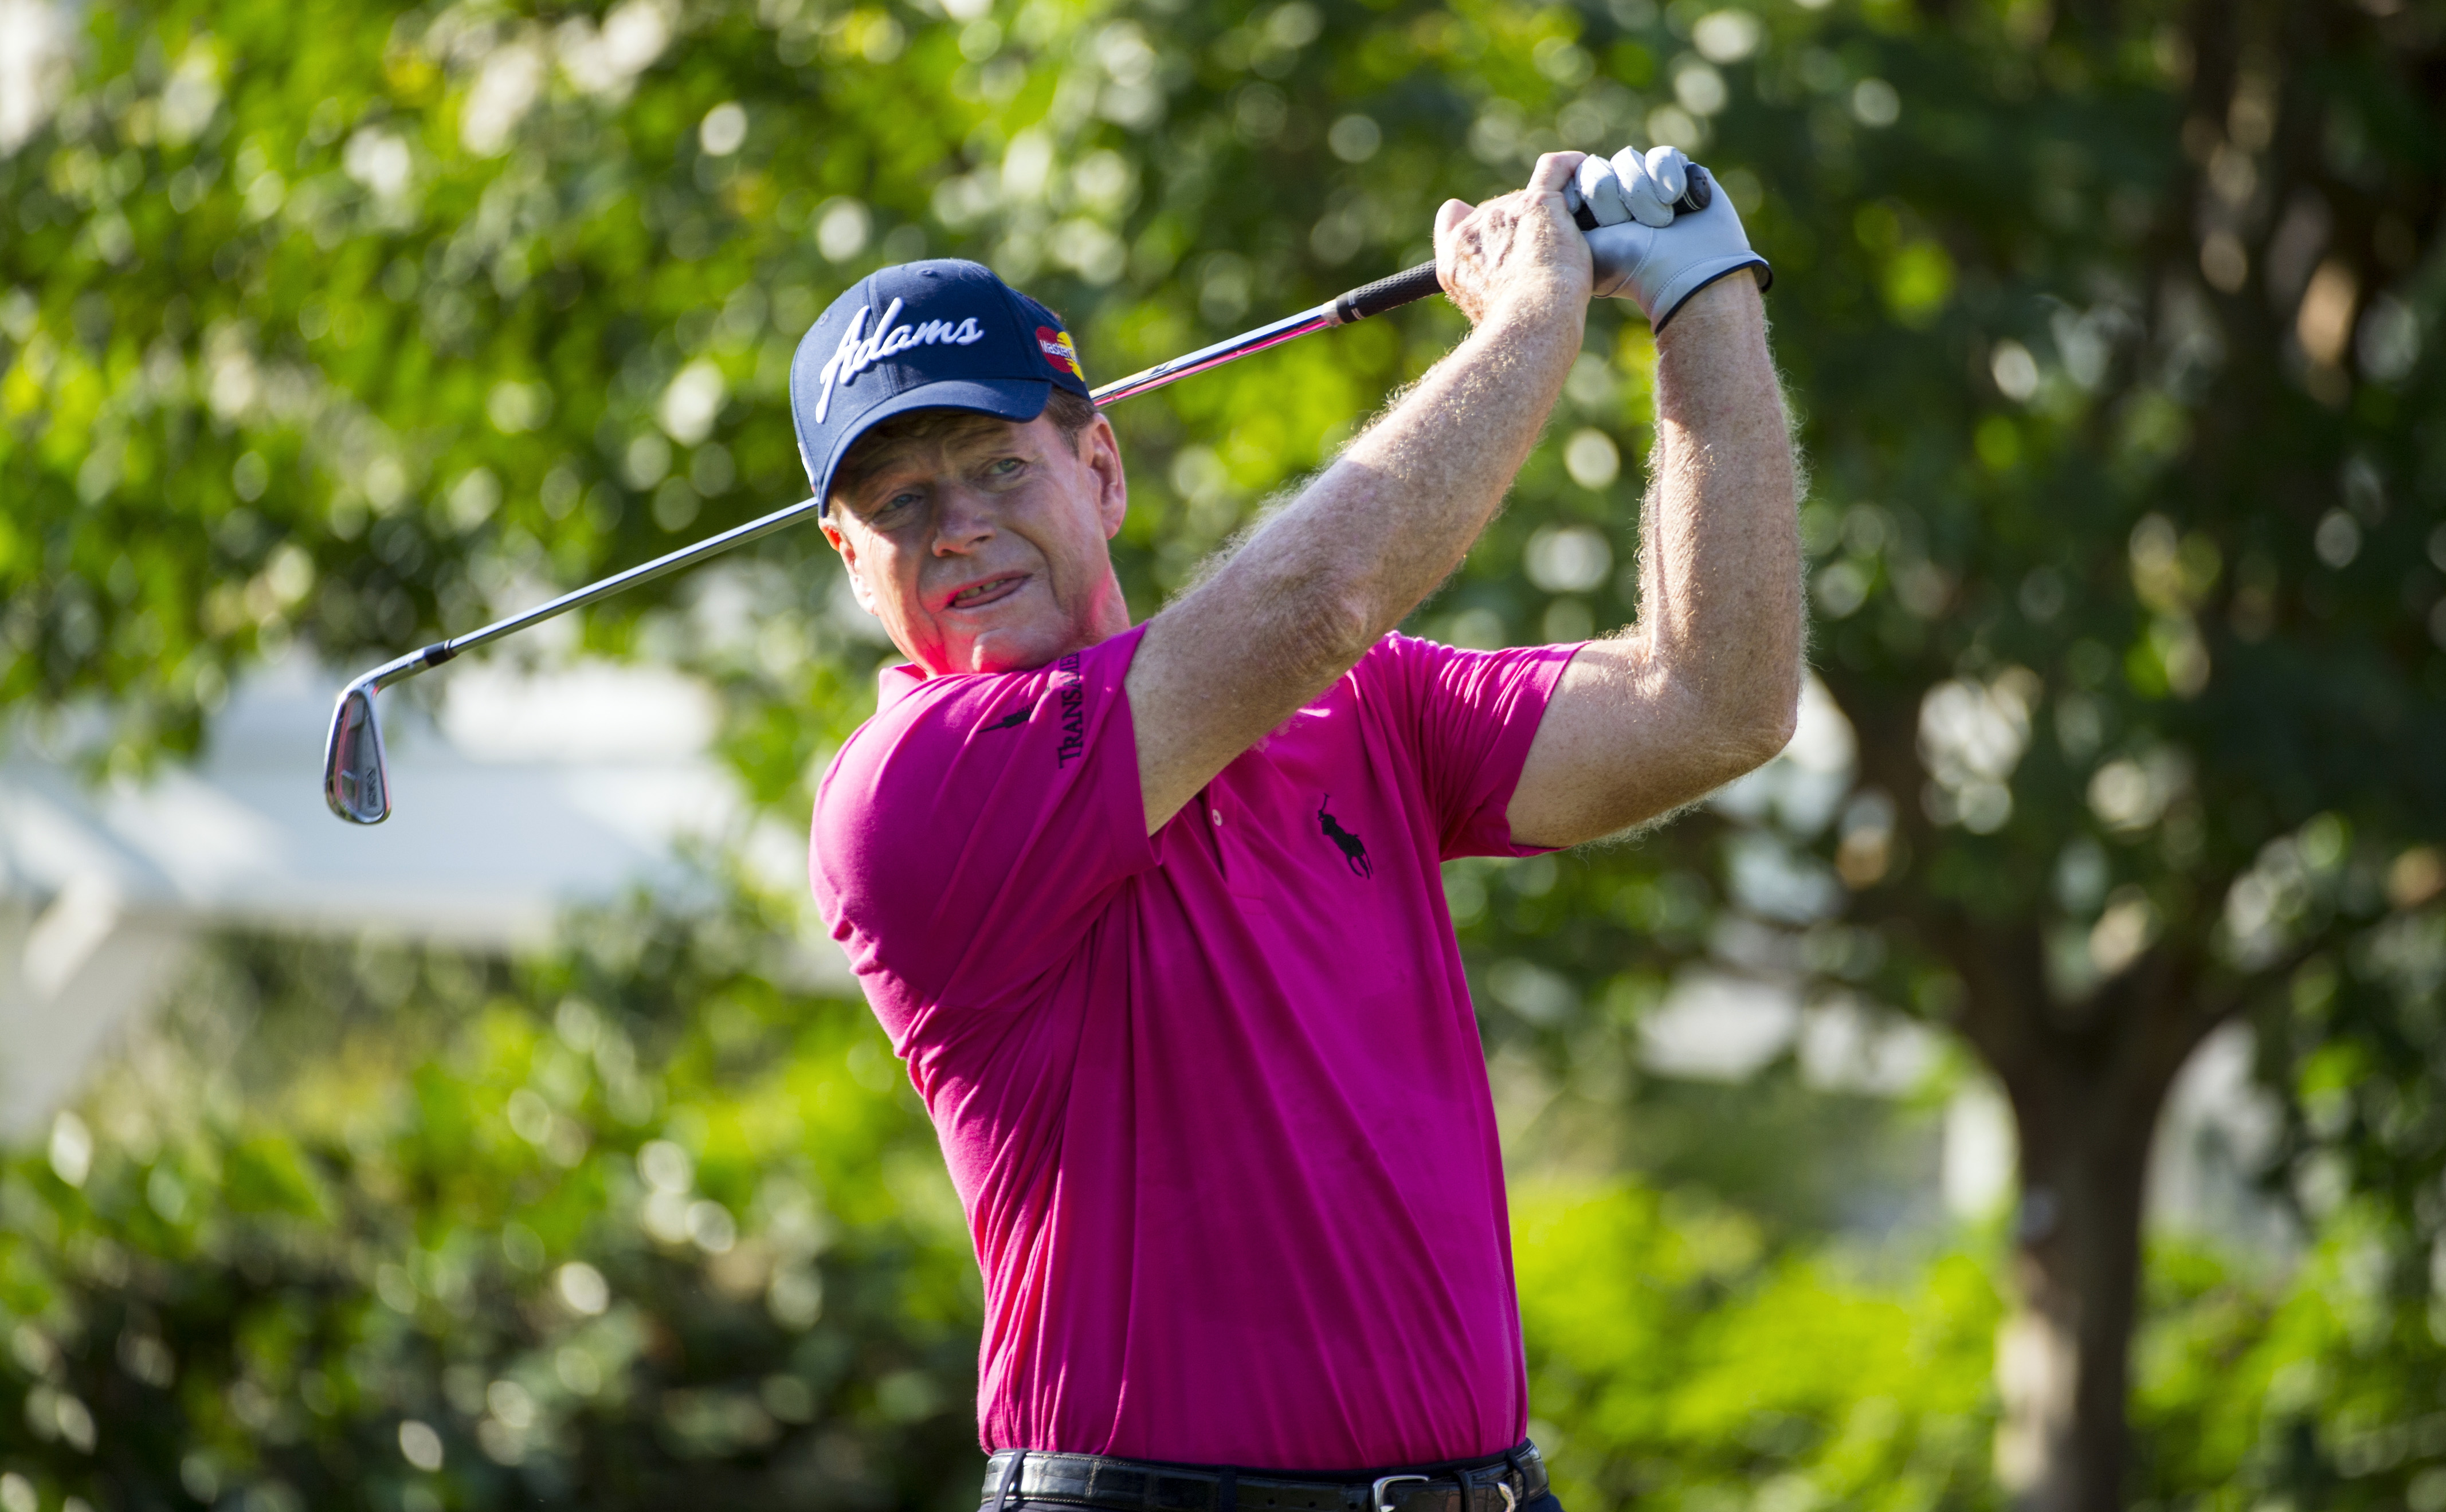 Tom Watson watches his tee shot on the 10th hole during the first round round of the 2015 U.S. Senior Open.